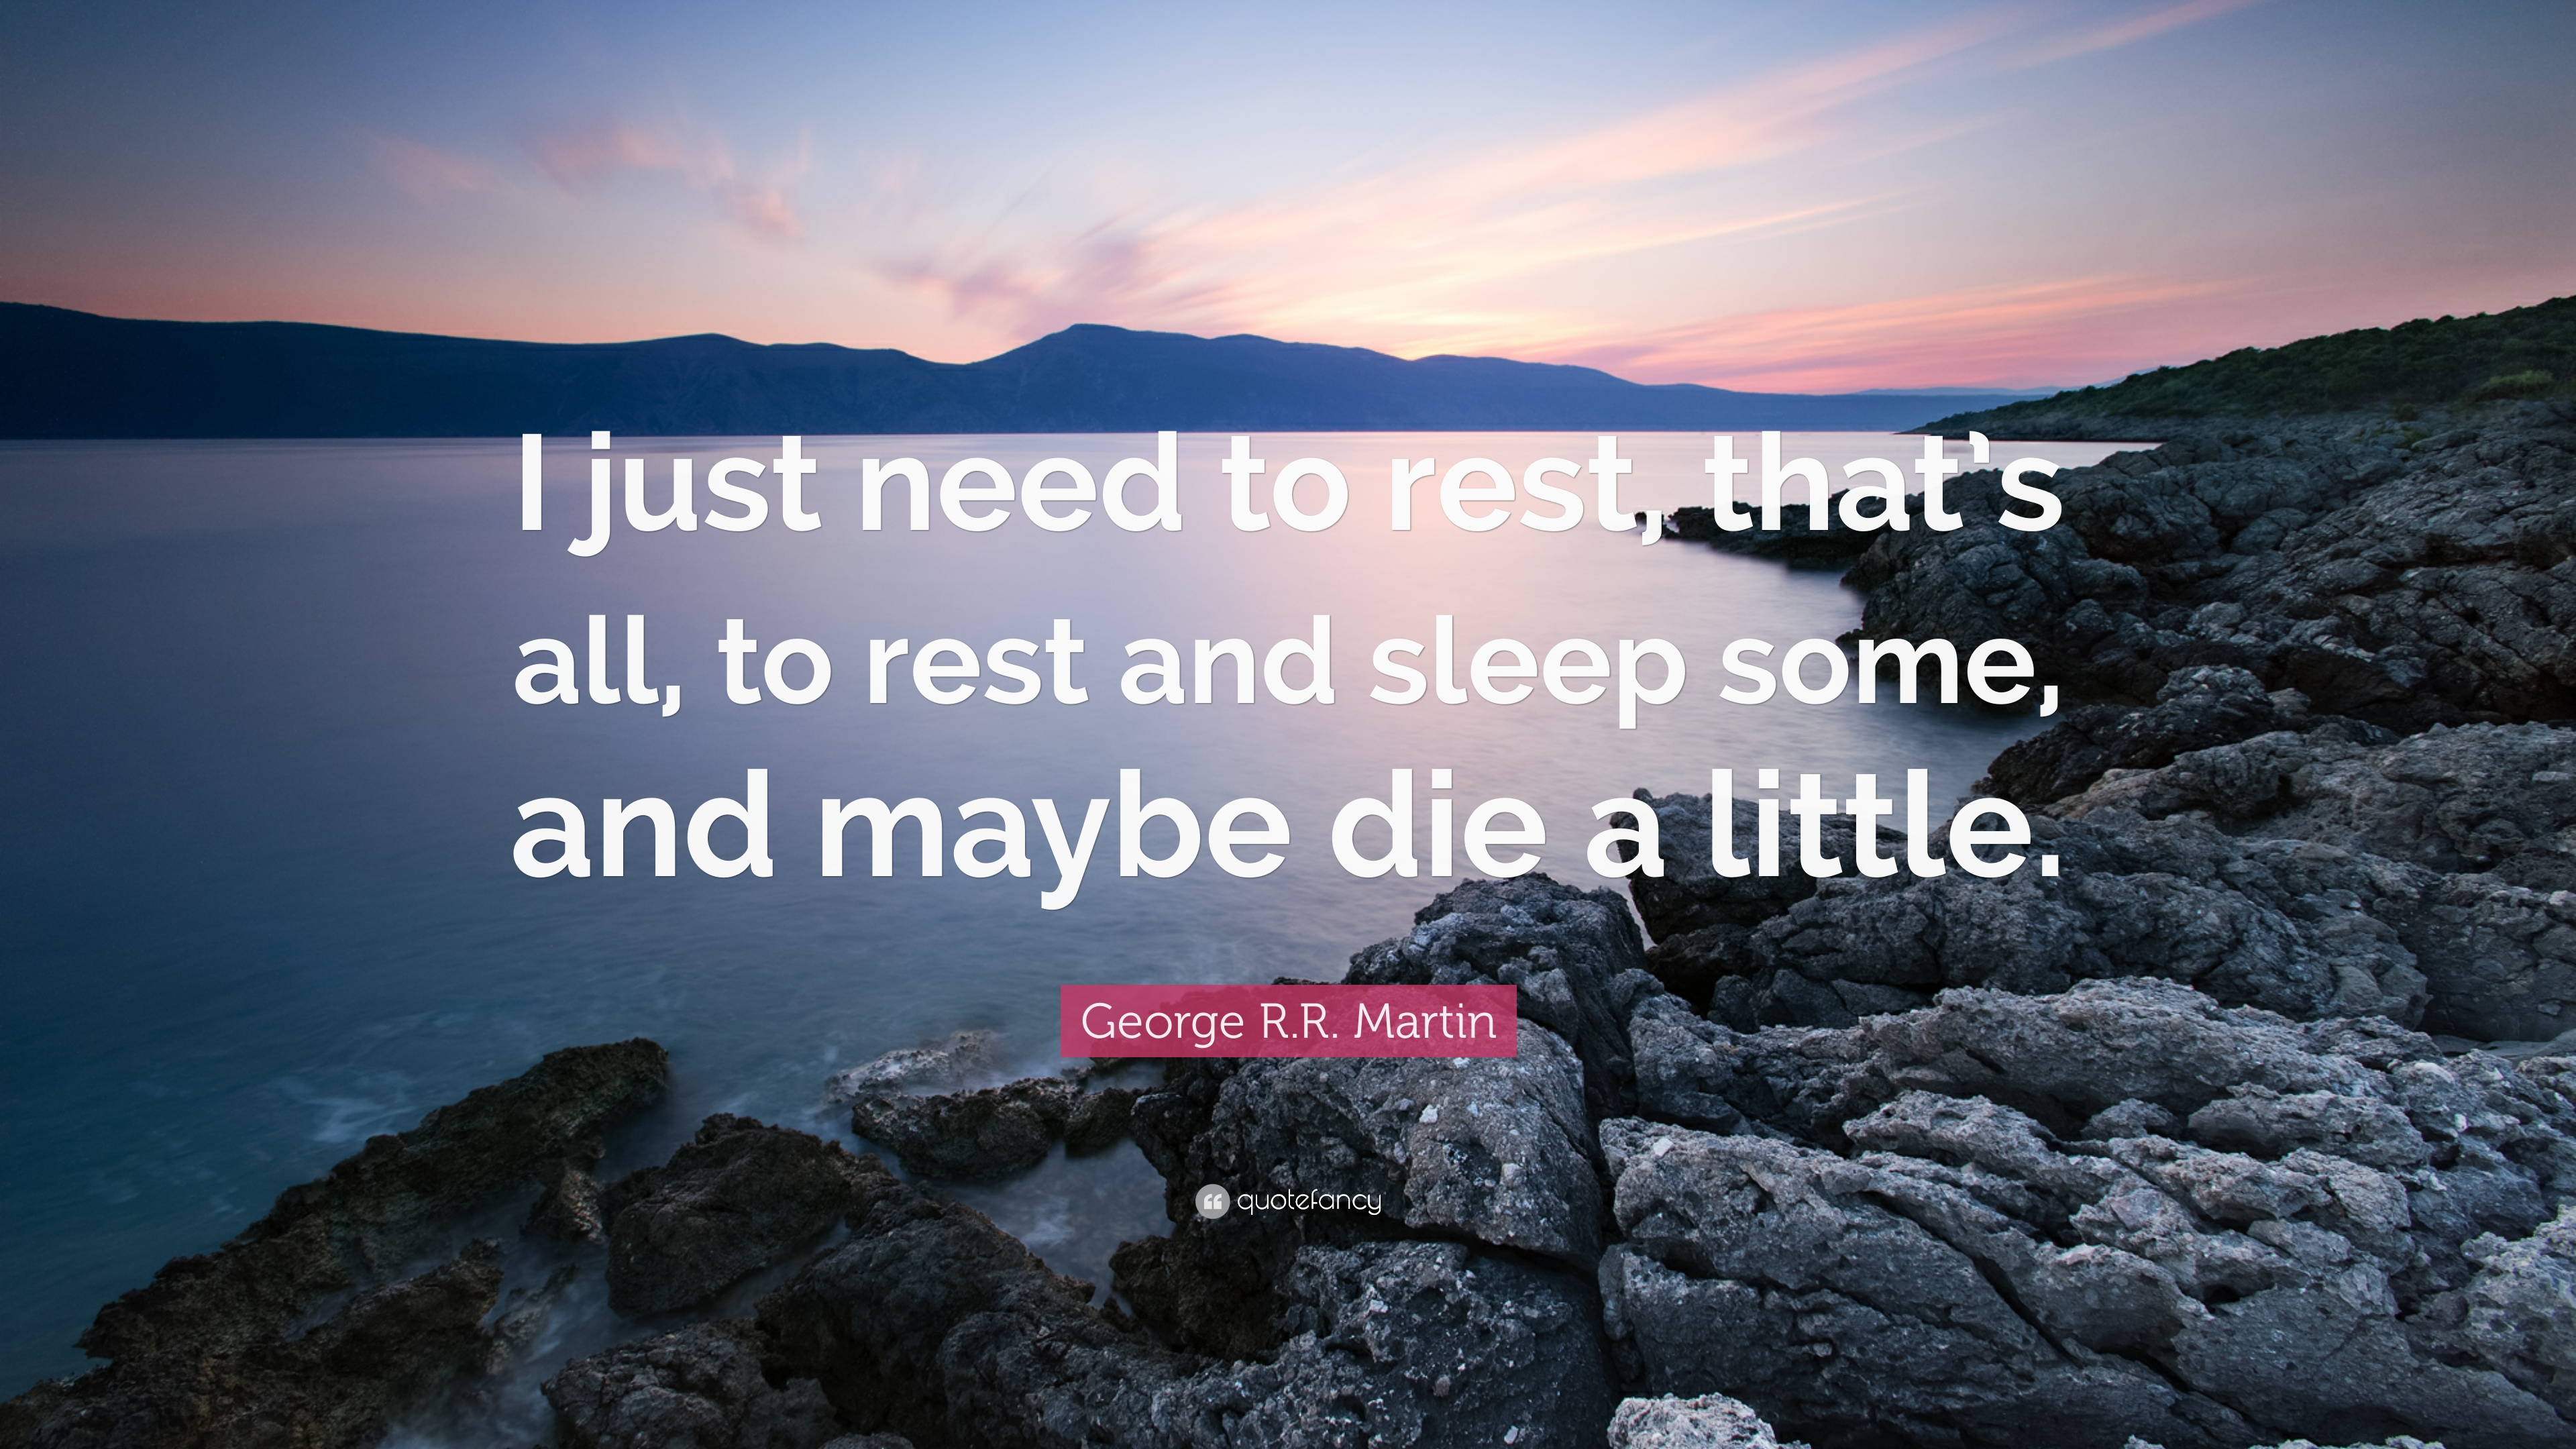 I have to rest